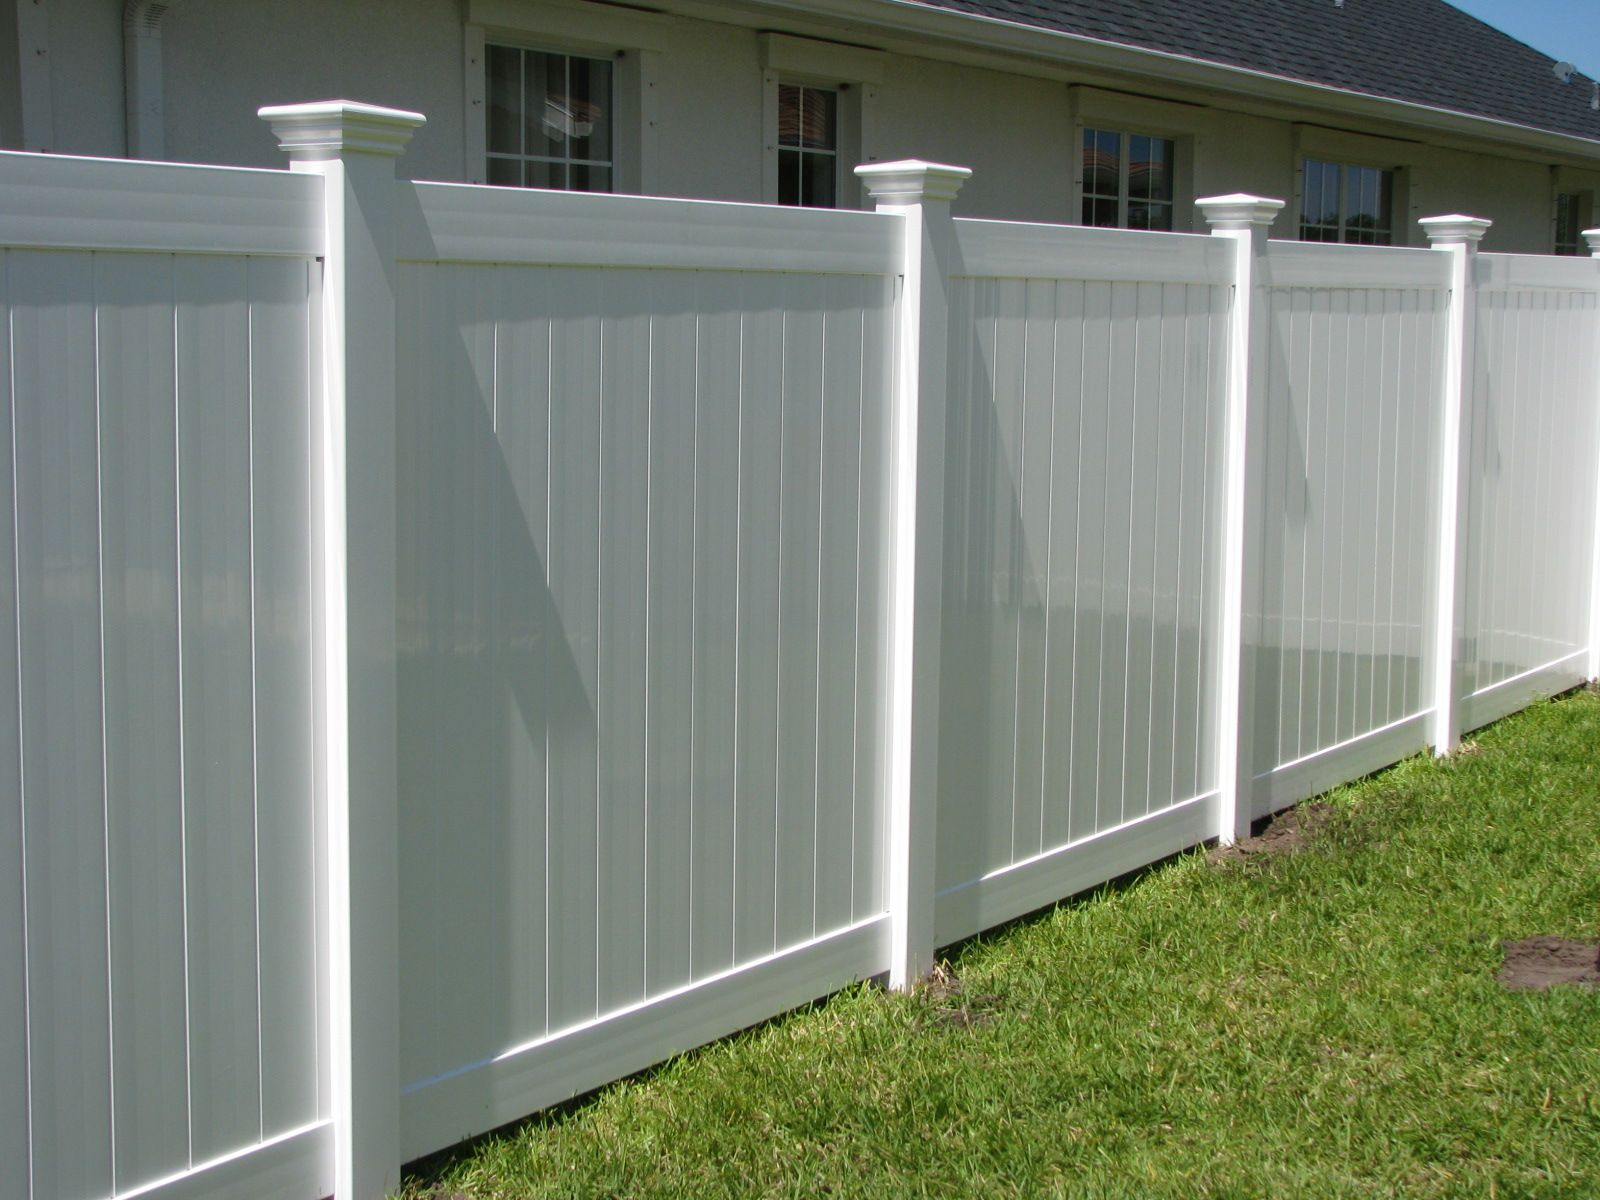 Classic White Vinyl Privacy Fence With Post Caps Mossy Oak Fence Company Orlando Melbourne Vinyl Privacy Fence White Vinyl Fence Privacy Fence Designs